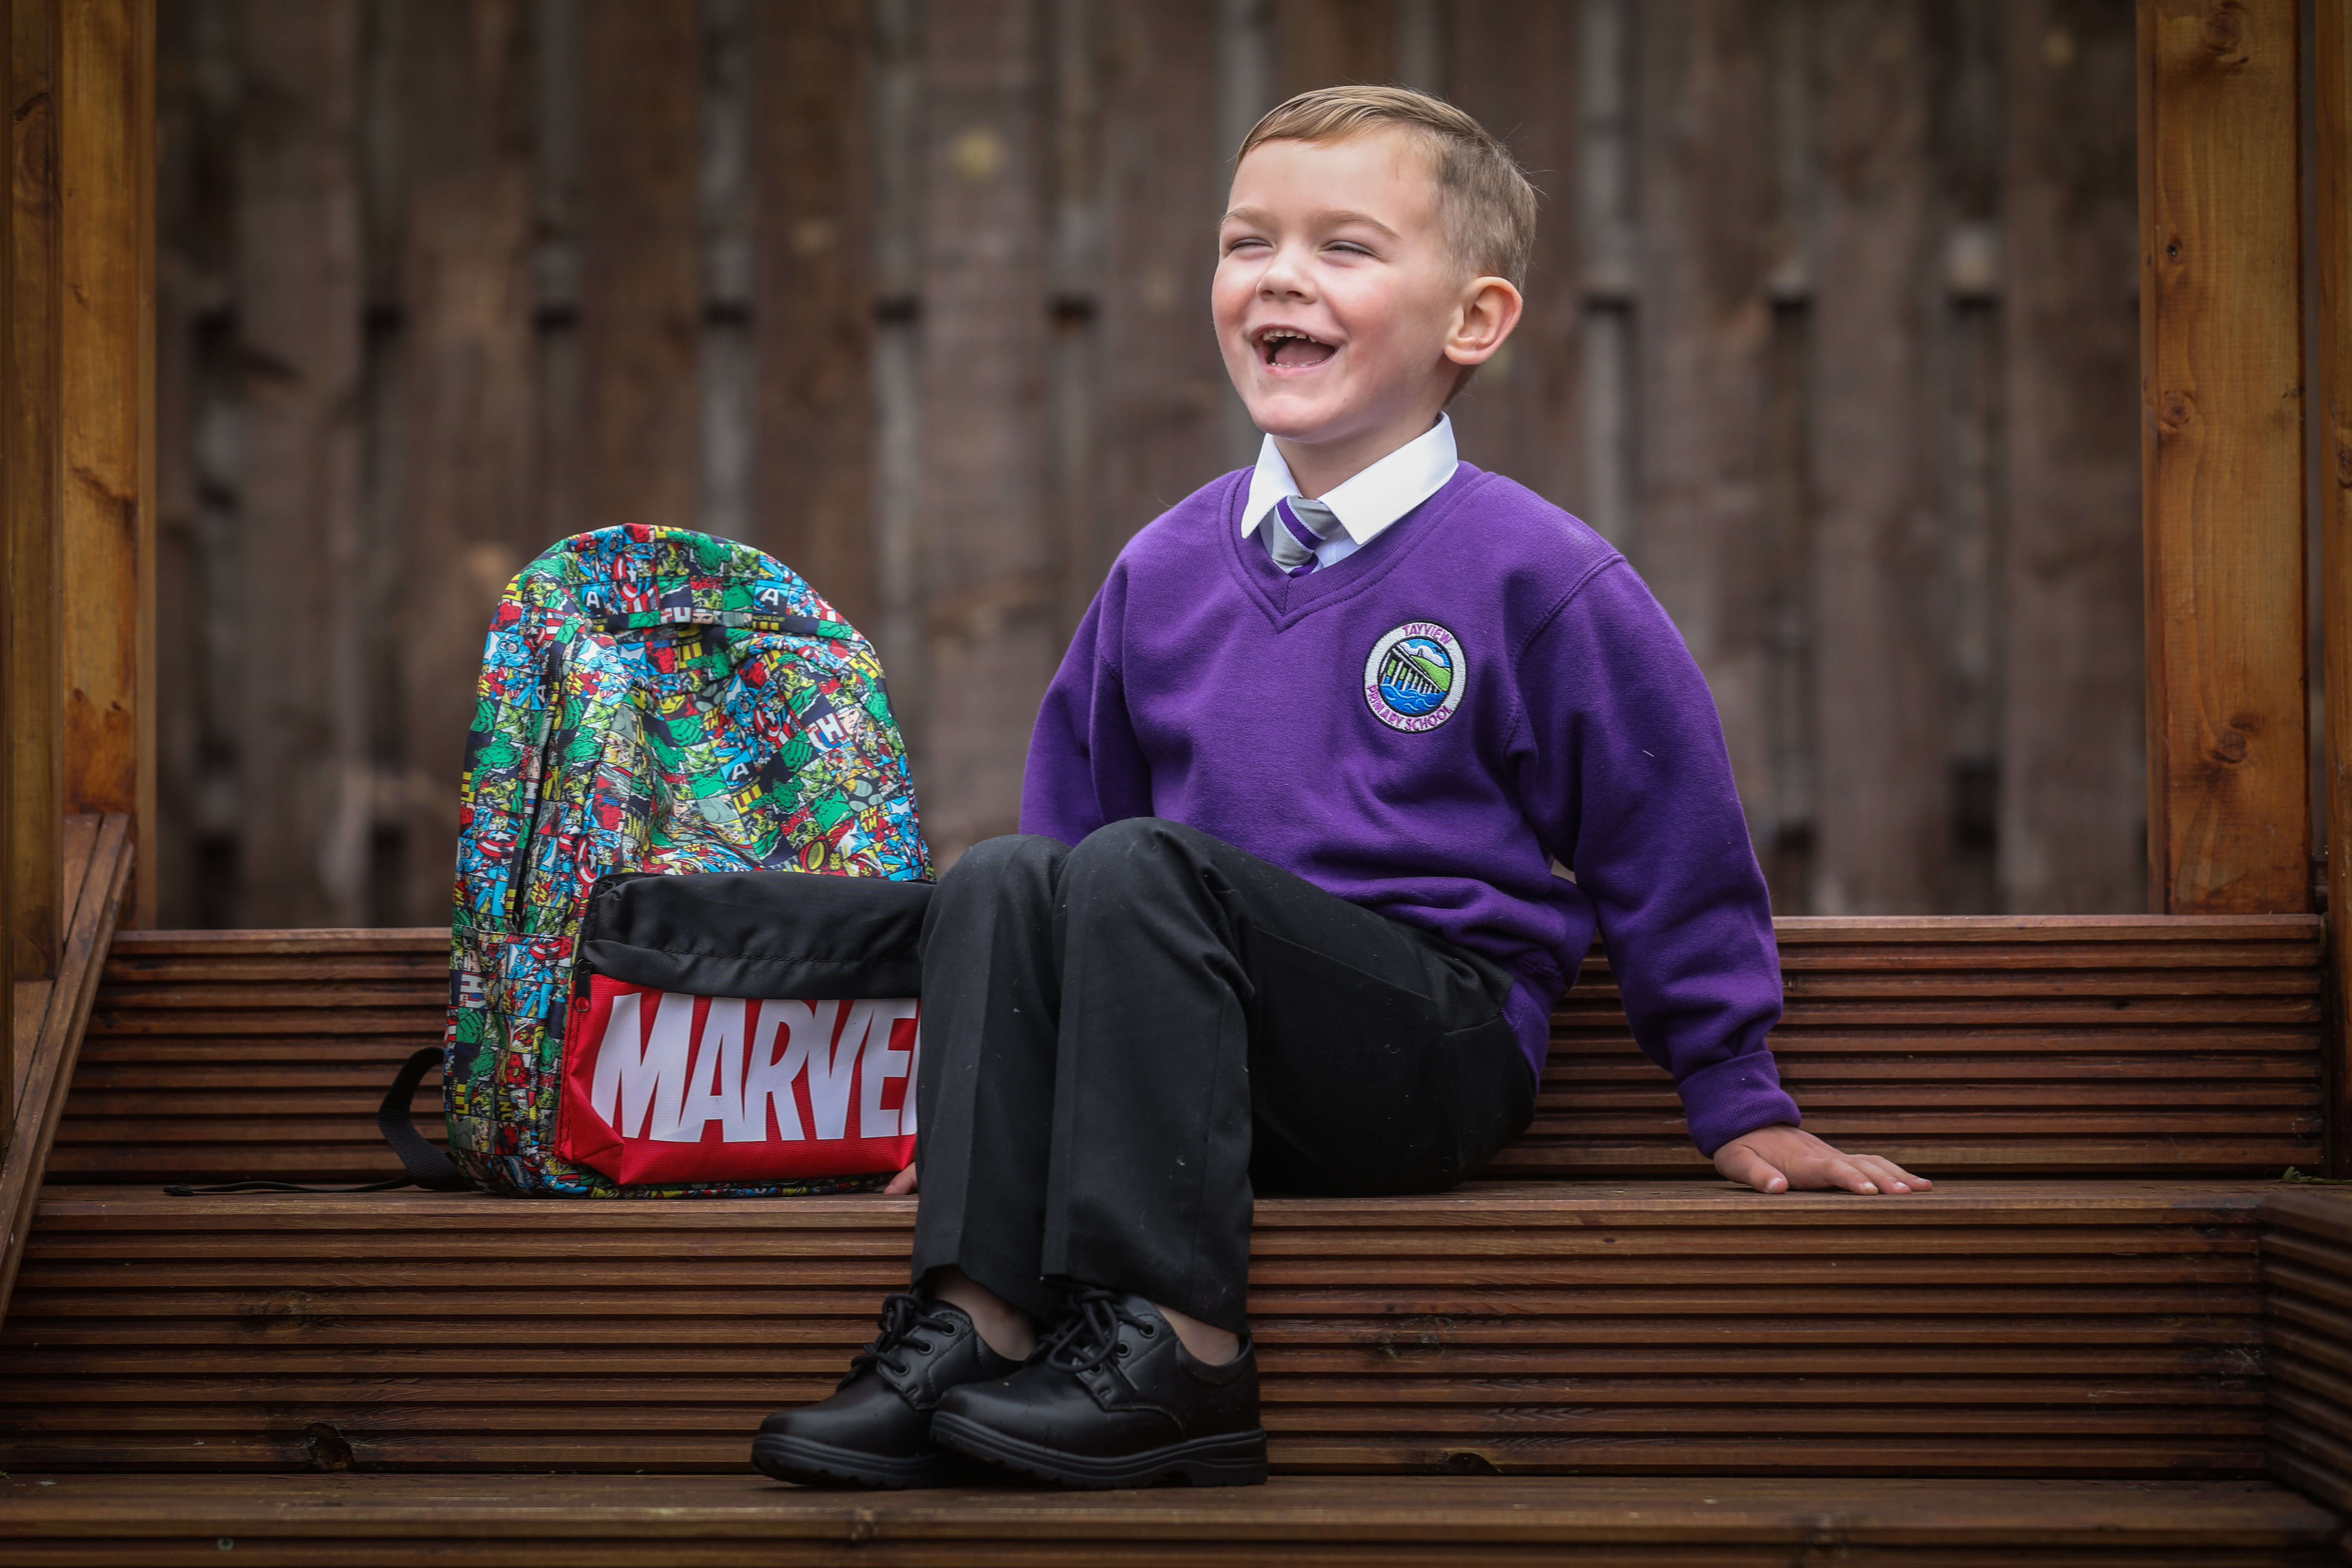 Konnor-Craig McKenzie, 5, has battled cancer and is starting school on Tuesday.